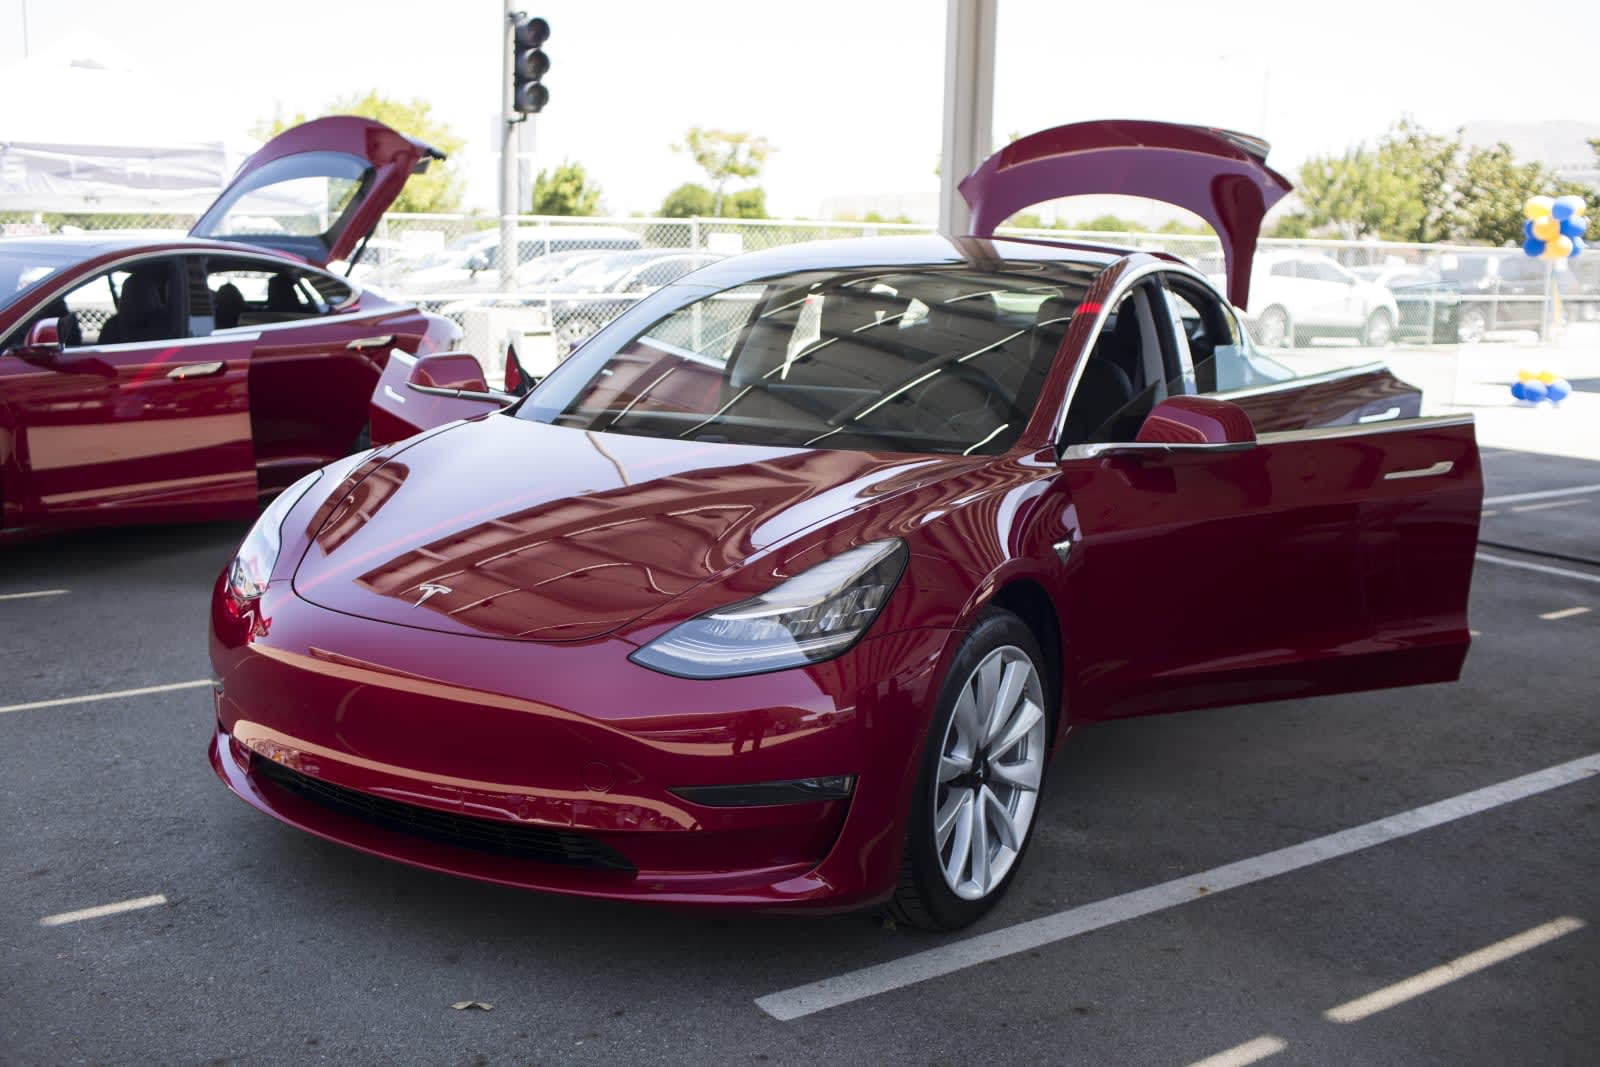 Tesla and Consumer Reports continue feud following Model 3